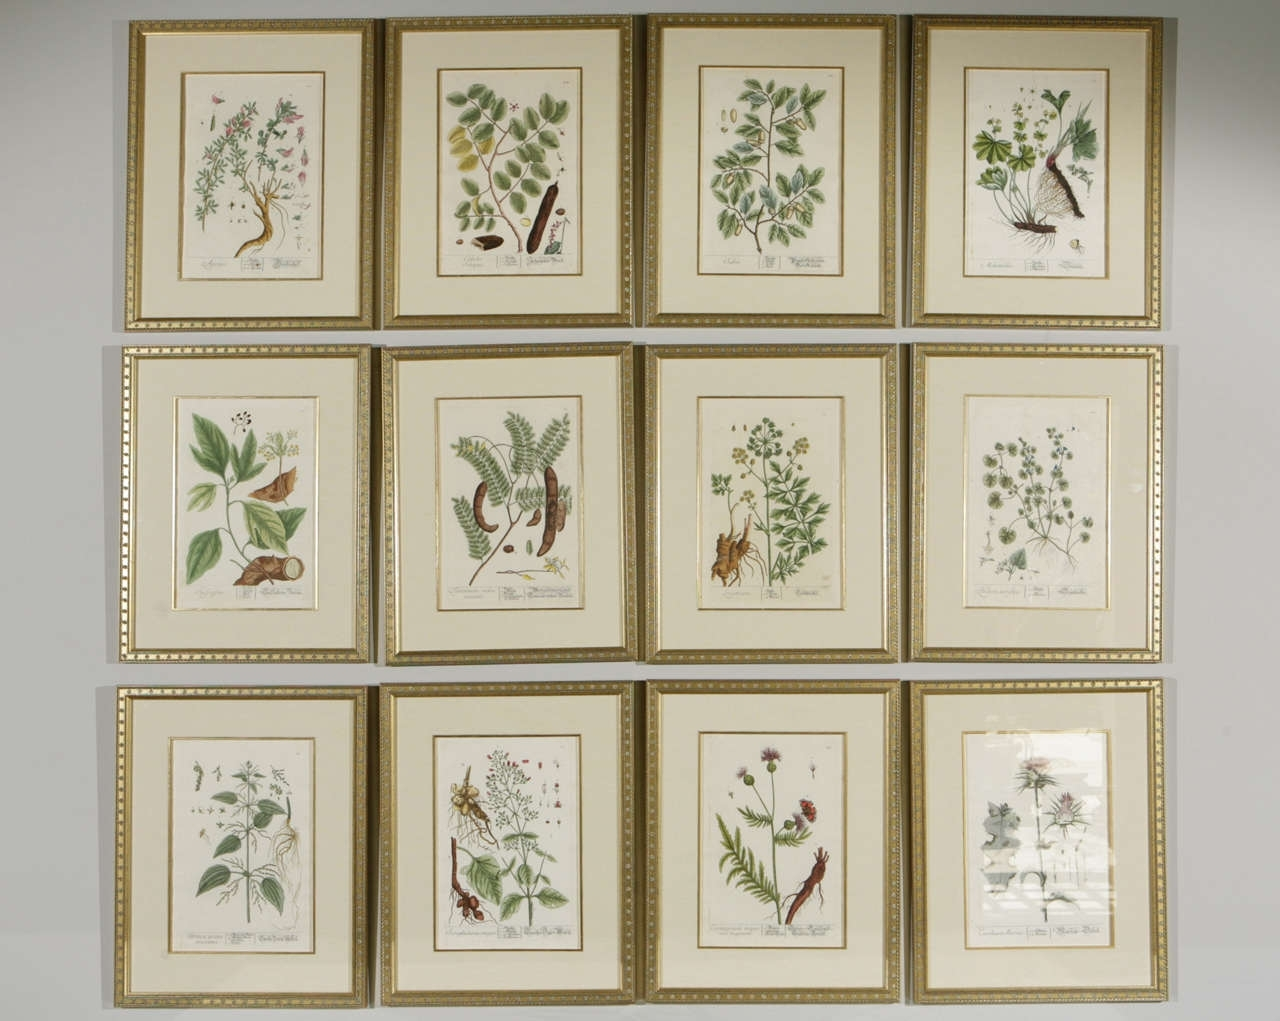 Framed Botanical Prints Sets | Sorrentos Bistro Home Throughout Most Popular Framed Art Prints Sets (View 5 of 15)